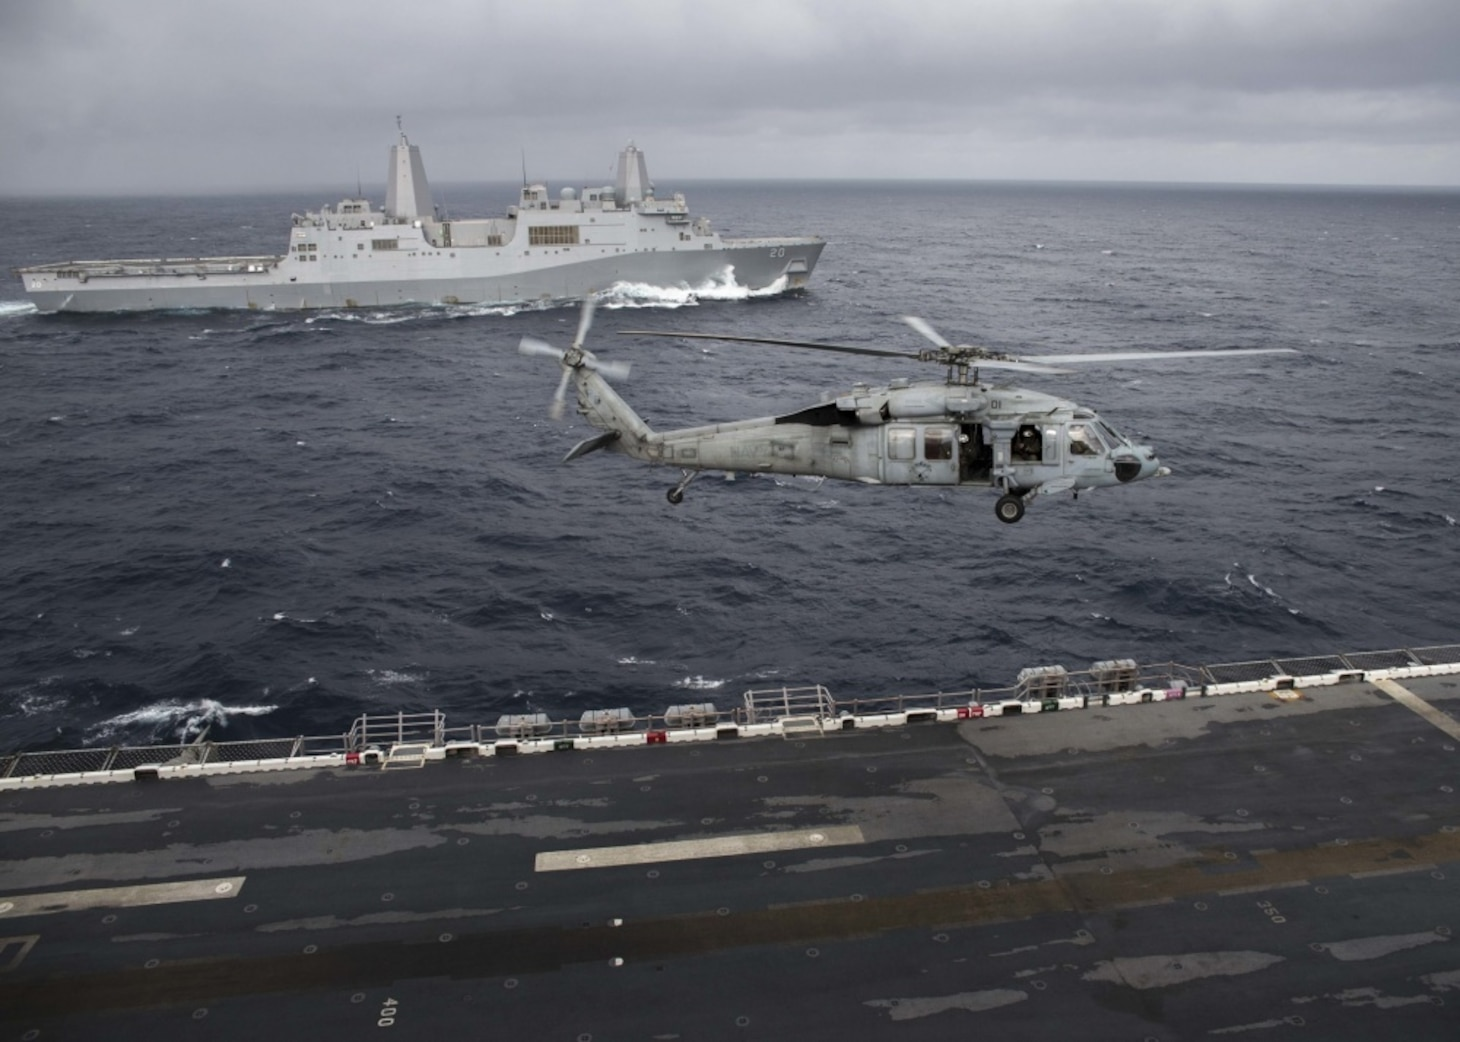 """EAST CHINA SEA (Jan. 12, 2019) - A MH-60S Sea Hawk helicopter, assigned to the """"Island Knights"""" of Helicopter Sea Combat Squadron (HSC) 25, passes in front of the amphibious transport dock ship USS Green Bay (LPD 20) as it prepares to land on the flight deck of the amphibious assault ship USS Wasp (LHD 1). Wasp, flagship of Wasp Amphibious Ready Group, is operating in the Indo-Pacific region to enhance interoperability with partners and serve as a ready-response force for any type of contingency."""